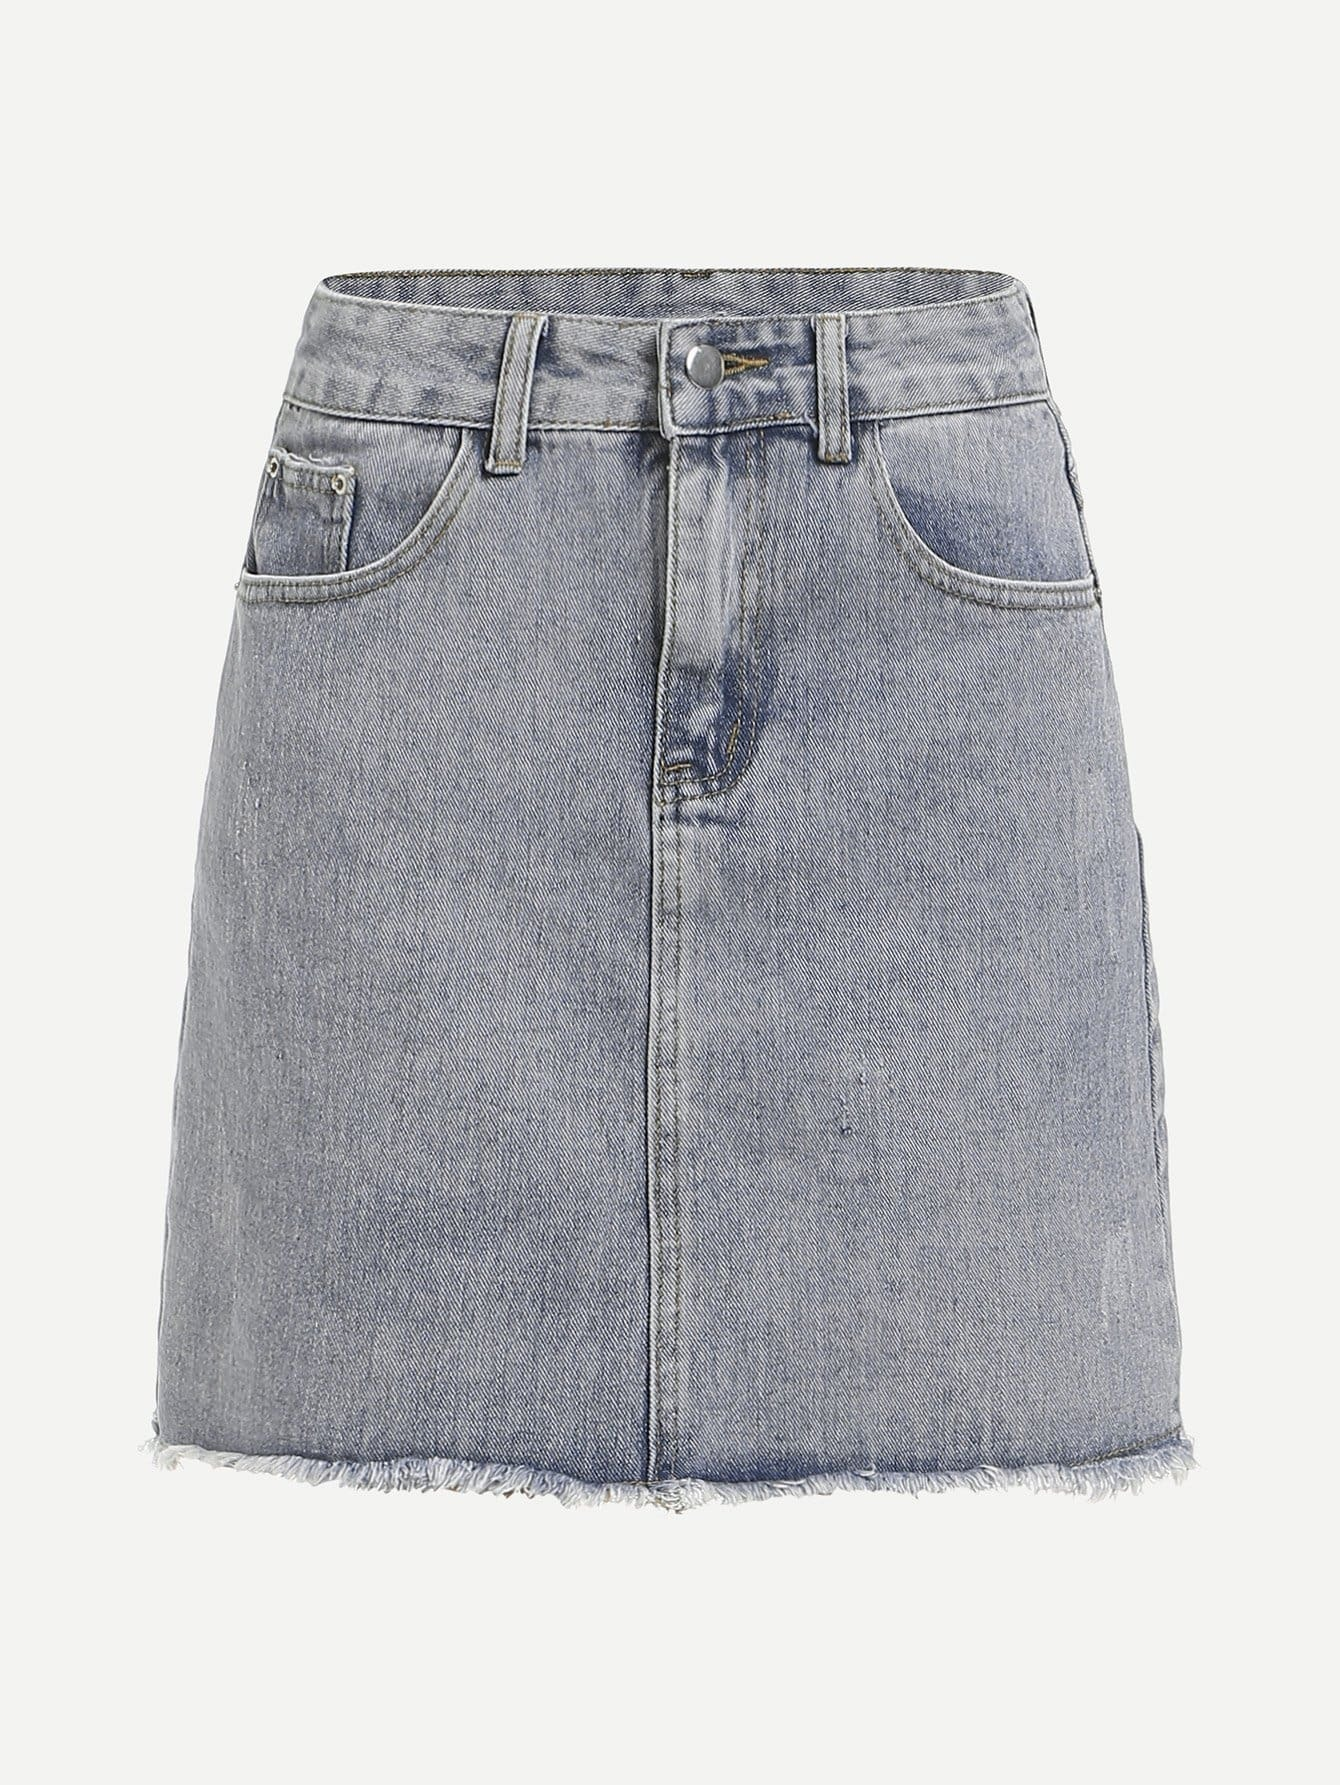 Bleach Wash Raw Hem Denim Skirt lace up raw hem bleach wash hot pants